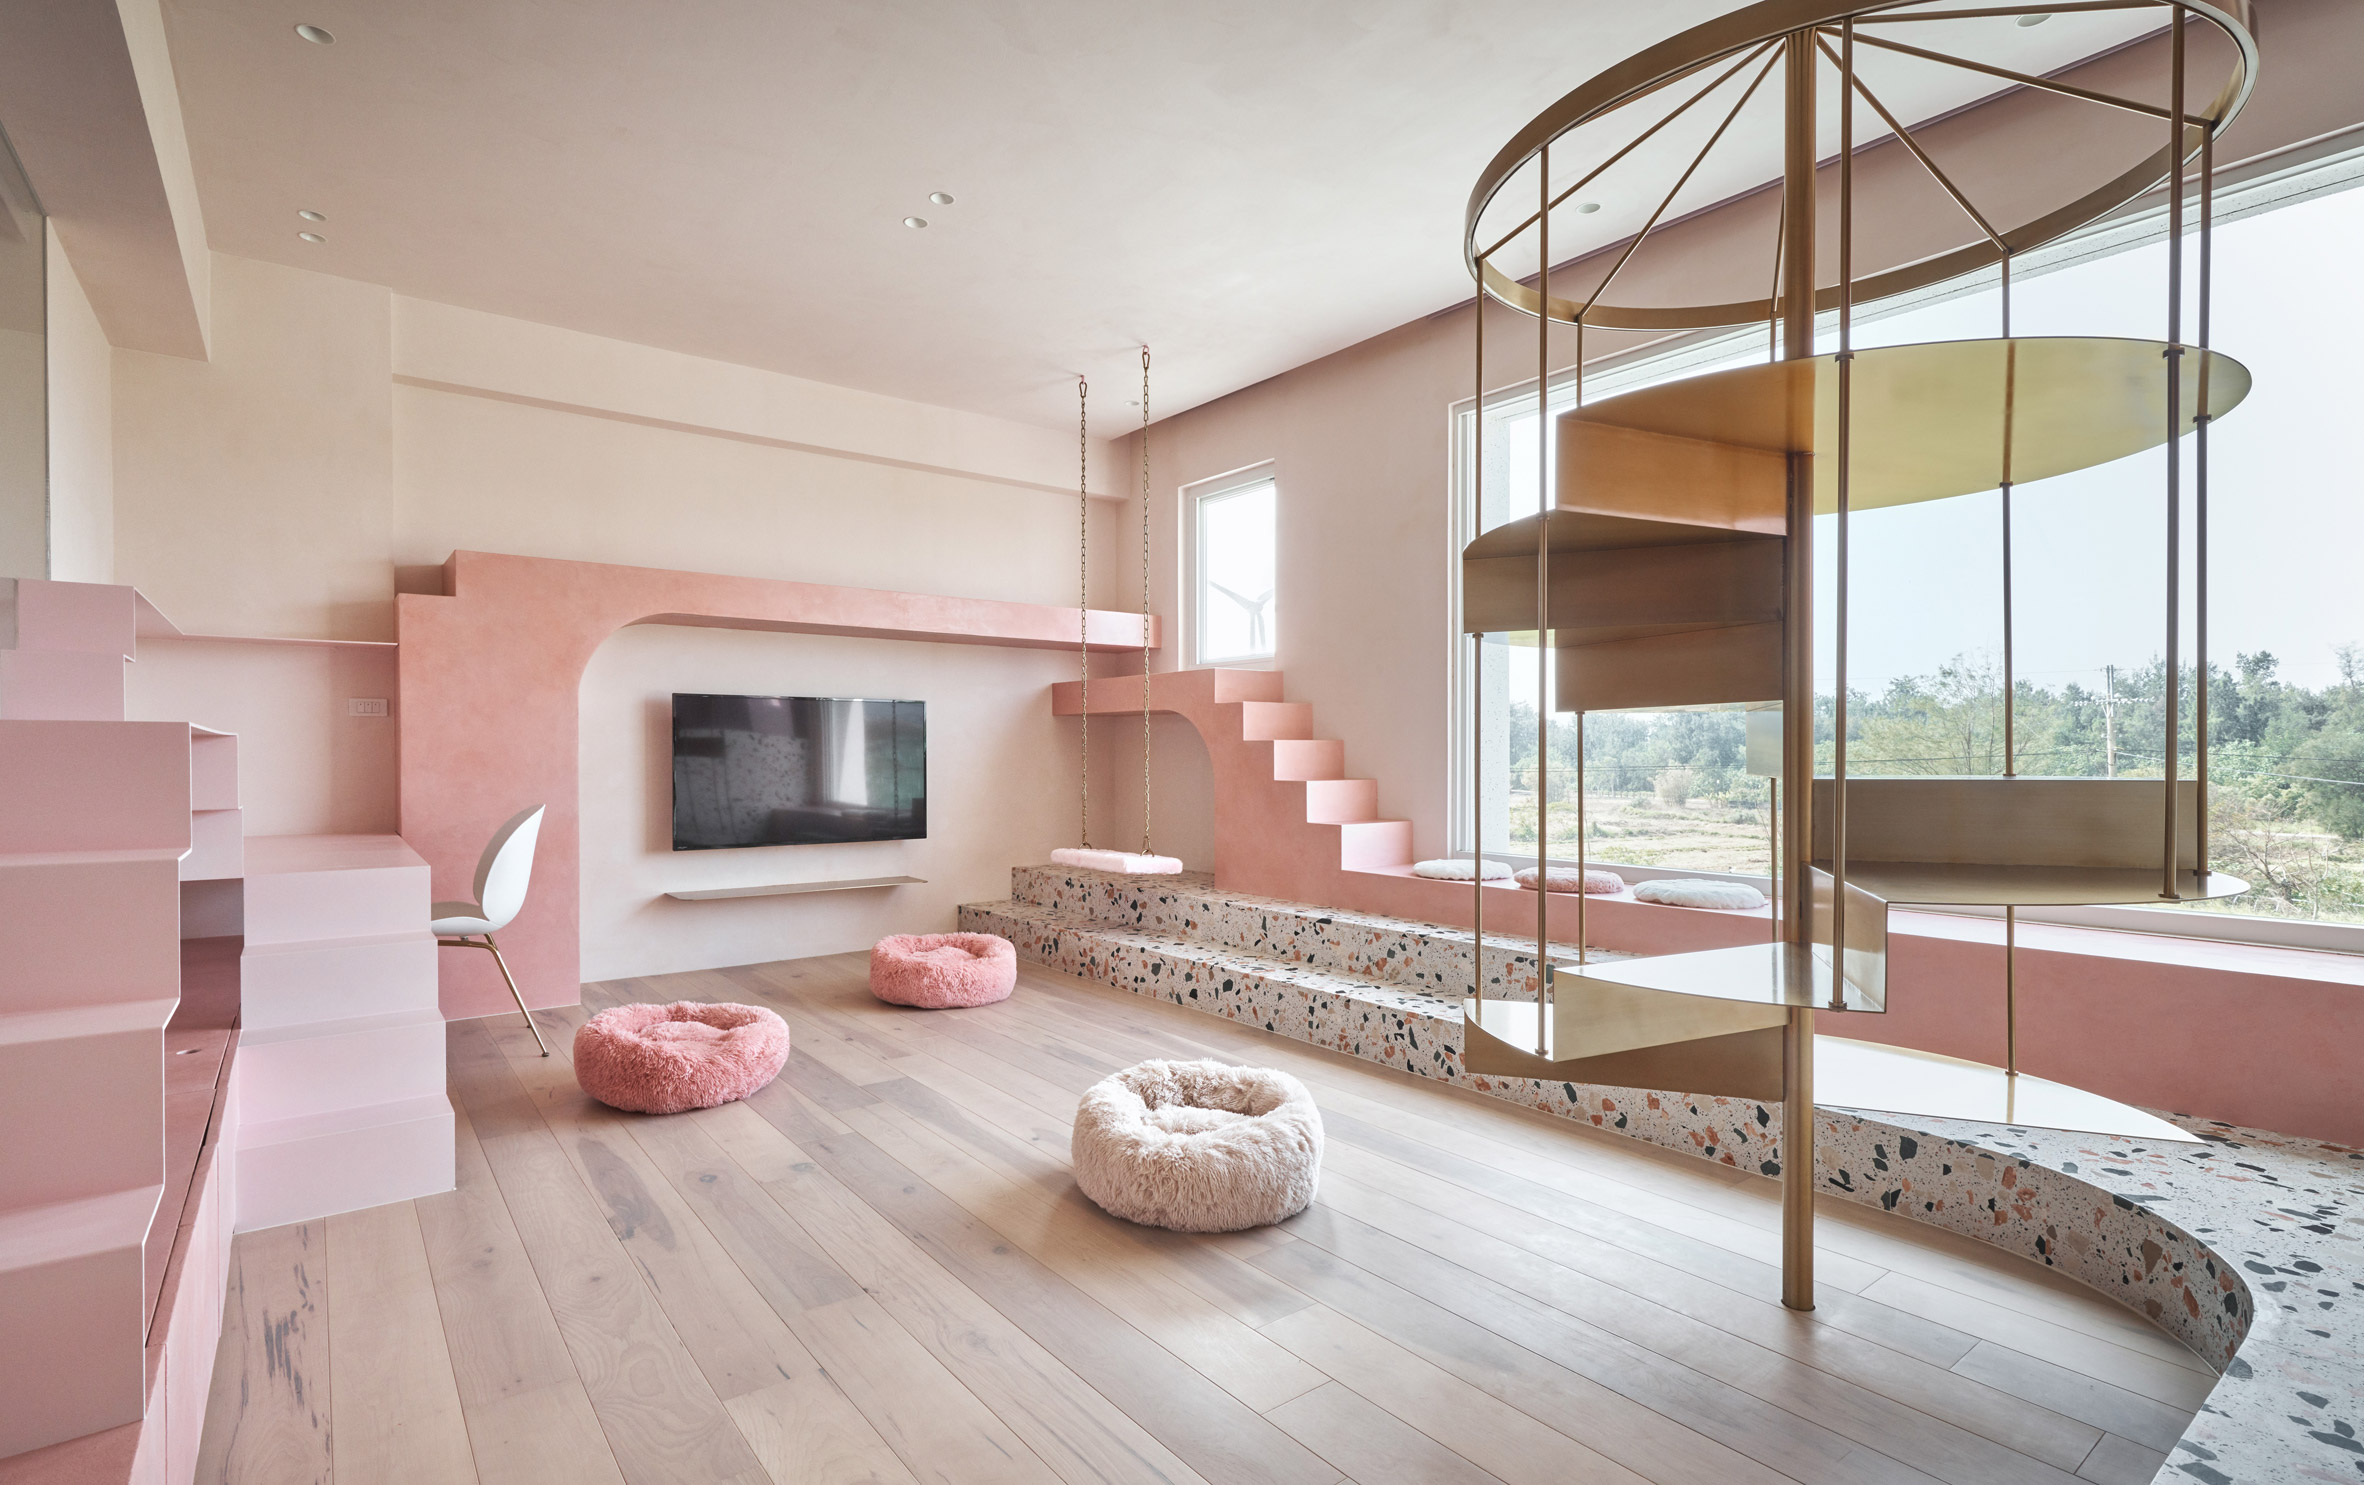 the-pink-house-kc-design-studio-holiday-home-taiwan_dezeen_2364_col_4.jpg